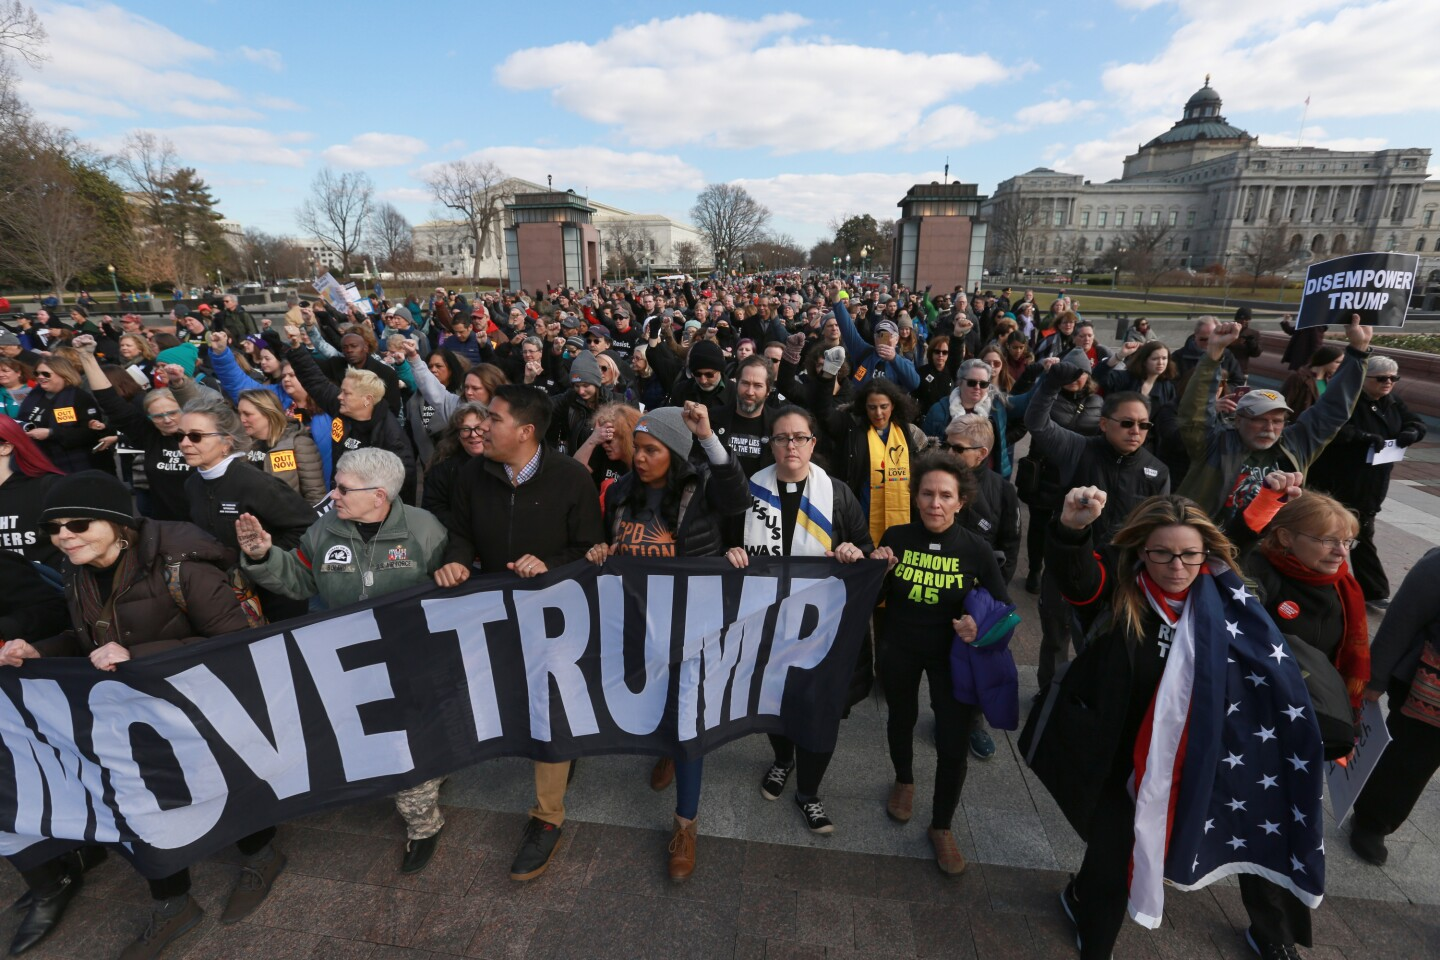 WASHINGTON, D.C., JANUARY 29, 2020: 400-500 Hundreds to Swarm the Capitol to Demand Witnesses and Evidence in Senate Impeachment Trial. Demonstrators protest outside of the Capitol during the Senate impeachment trial of President Donald Trump in Washington, Wednesday, Jan. 29, 2020. (Kirk McKoy/Los Angeles Times)